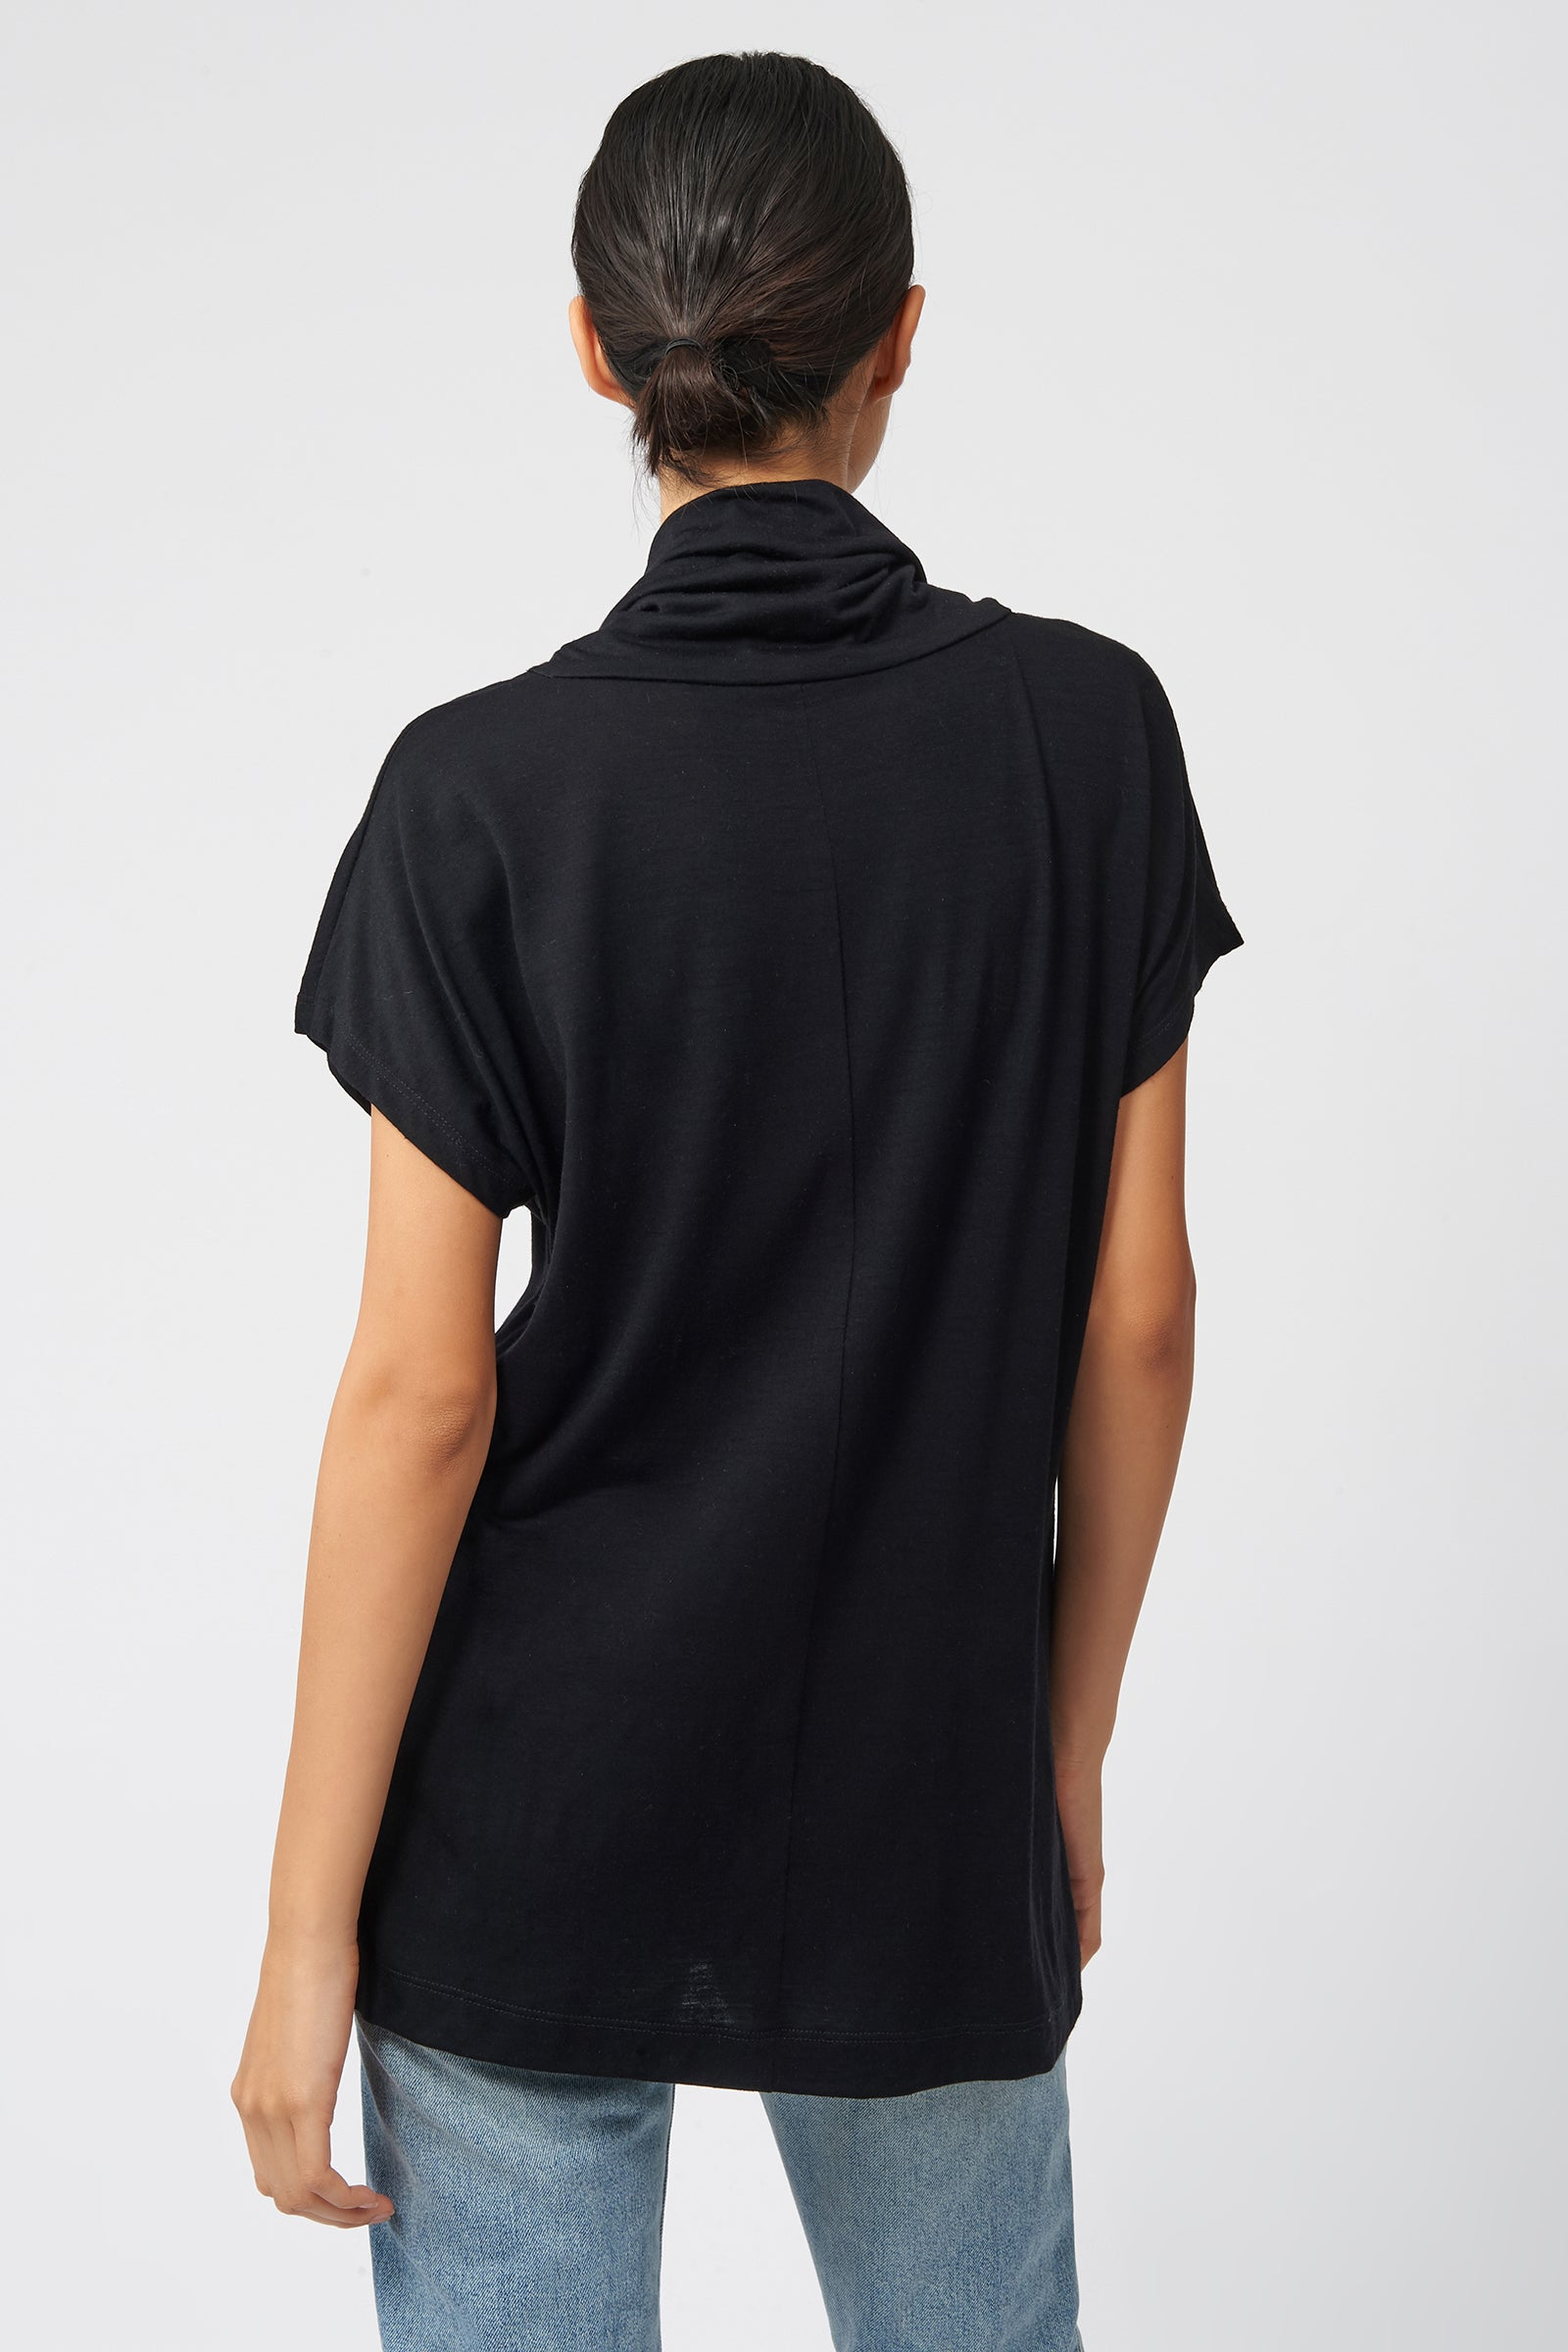 Kal Rieman Cowel Neck Seam Tee in Black on Model Front View